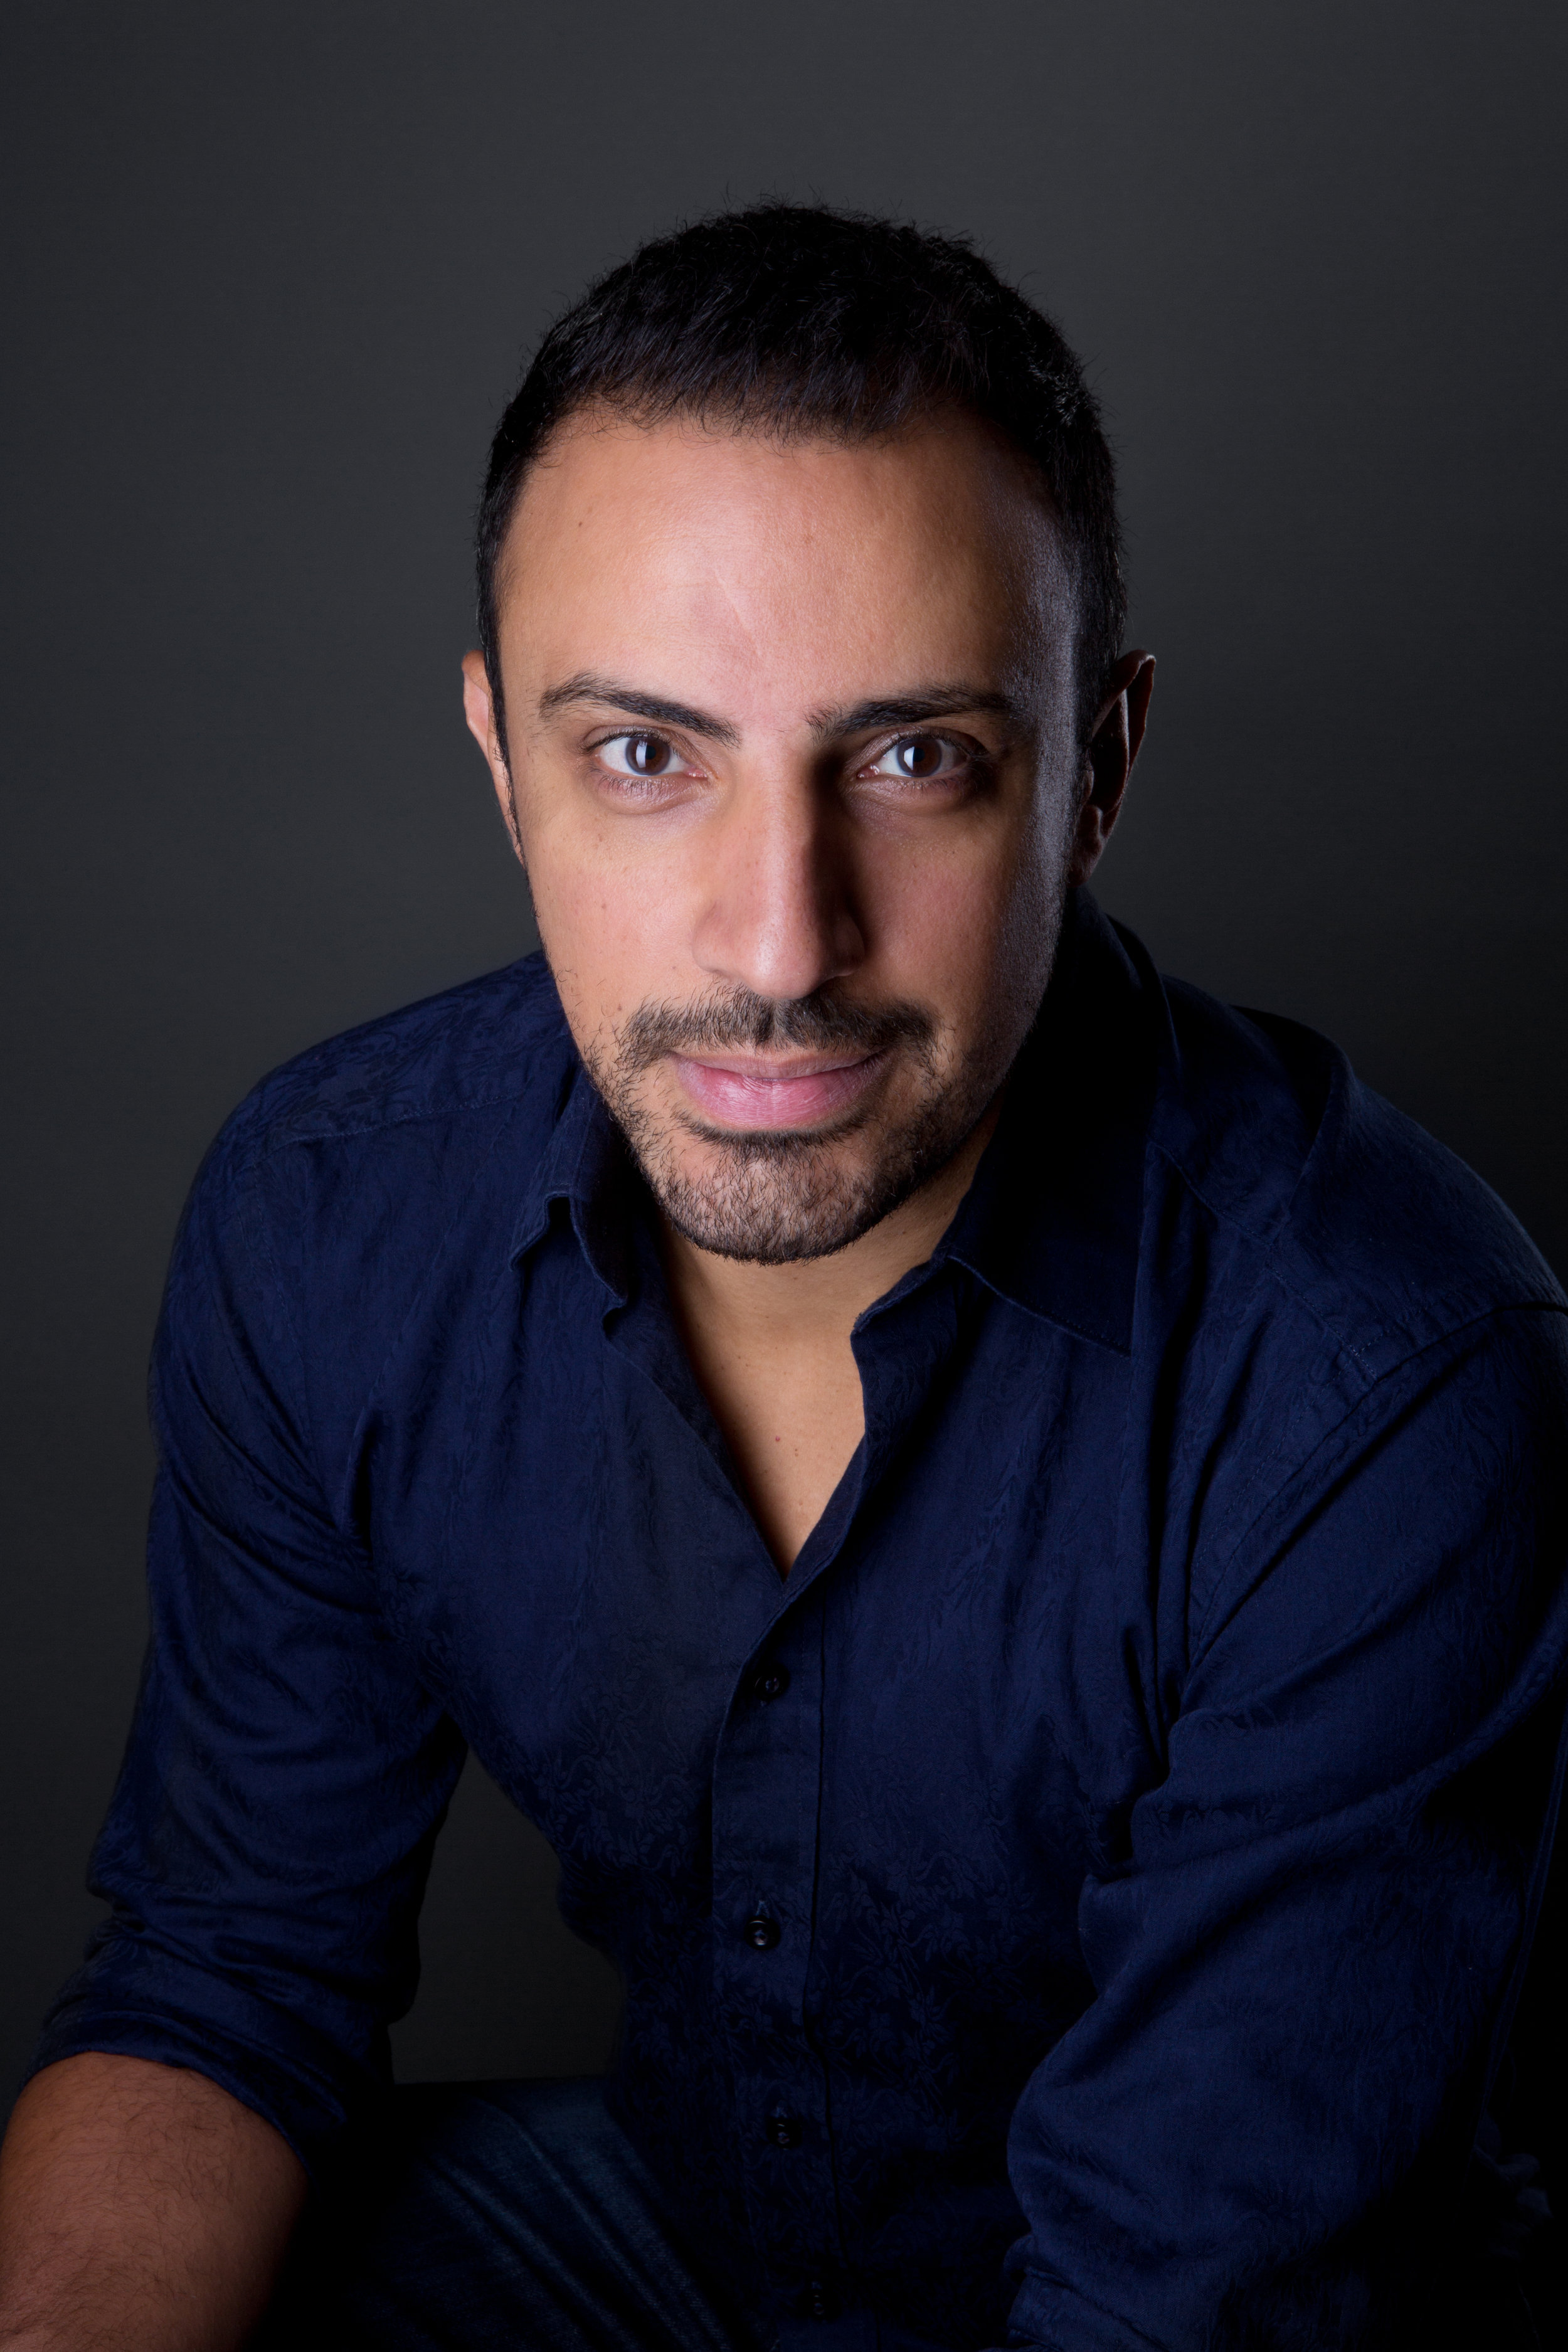 - Dimitri Nasrallah is the author of three novels, most recently The Bleeds (2018). He was born in Lebanon in 1977, during the civil war, and lived in Kuwait, Greece, and Dubai before moving to Canada in 1988. His first novel, Blackbodying (2005), won Quebec's McAuslan First Book Prize and was a finalist for the Grand Prix du Livre de Montréal. His second novel, Niko (2011), won the Hugh MacLennan Prize for Fiction, and was nominated for CBC's Canada Reads and the International IMPAC Dublin Literary Award, and went on to become a critical and commercial success in French. A film adaptation is currently in pre-production. He is currently translating Éric Plamondon's 1984 Trilogy from French to English. He lives in Montreal, where he is fiction editor for the Esplanade Books imprint at Véhicule Press.photo by Roger Aziz